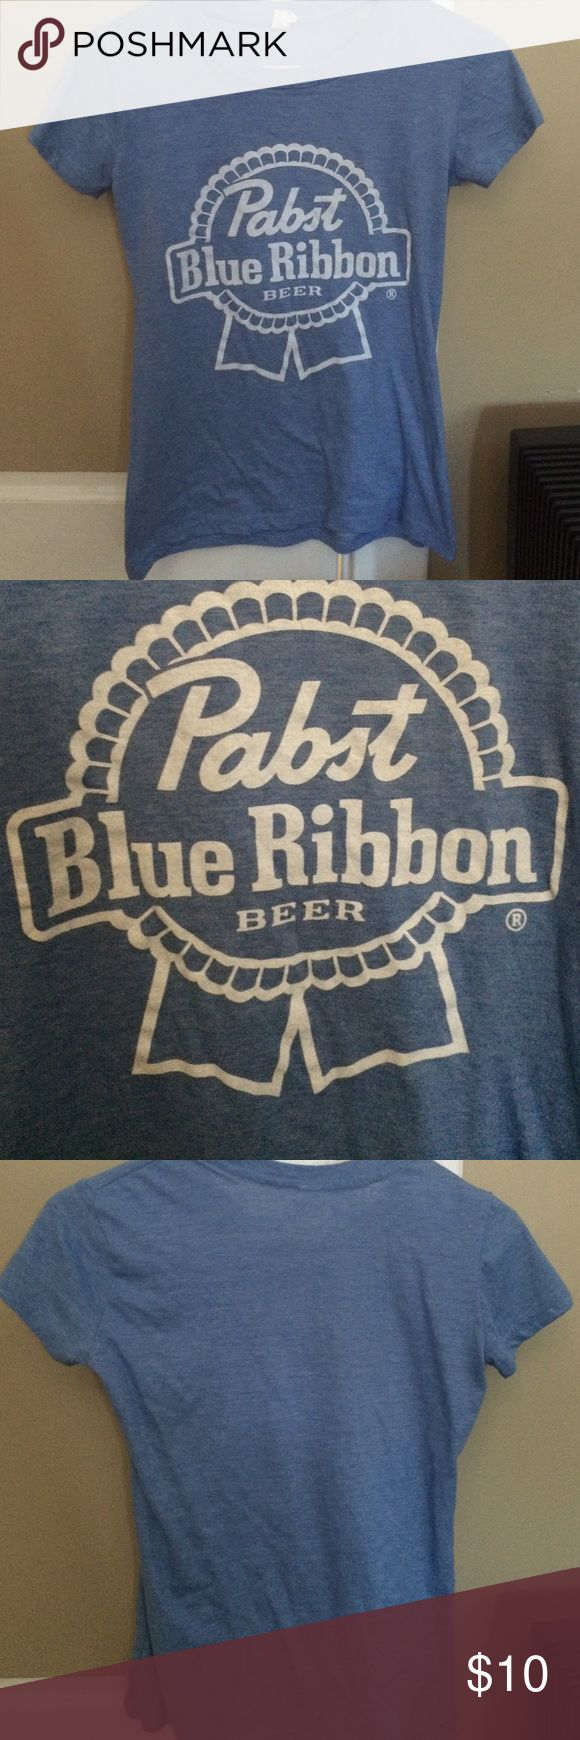 Pabst Blue Ribbon PBR Baby Blue Women's Tee-Shirt Lightweight with a tear away tag. Fits a women's medium well. White logo on the front, crew neck. I have a couple of these & cut one up - could be a great project for a cutout tee! If interested in measurements please LMK! Tops Tees - Short Sleeve